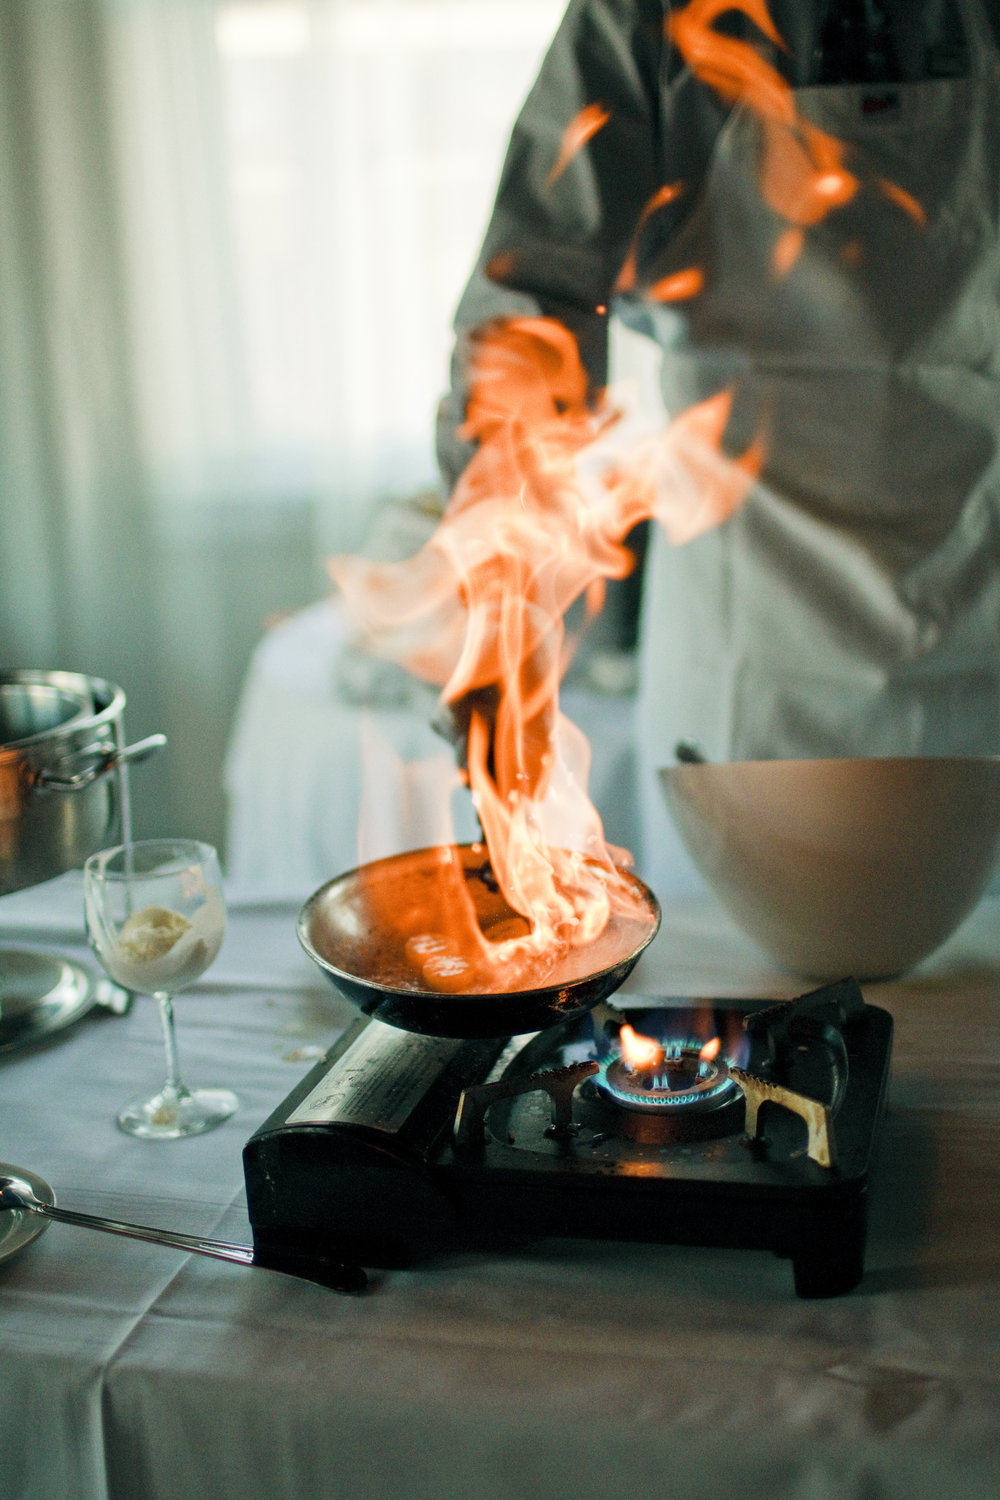 Your wedding reception will be fire with a bananas foster station!